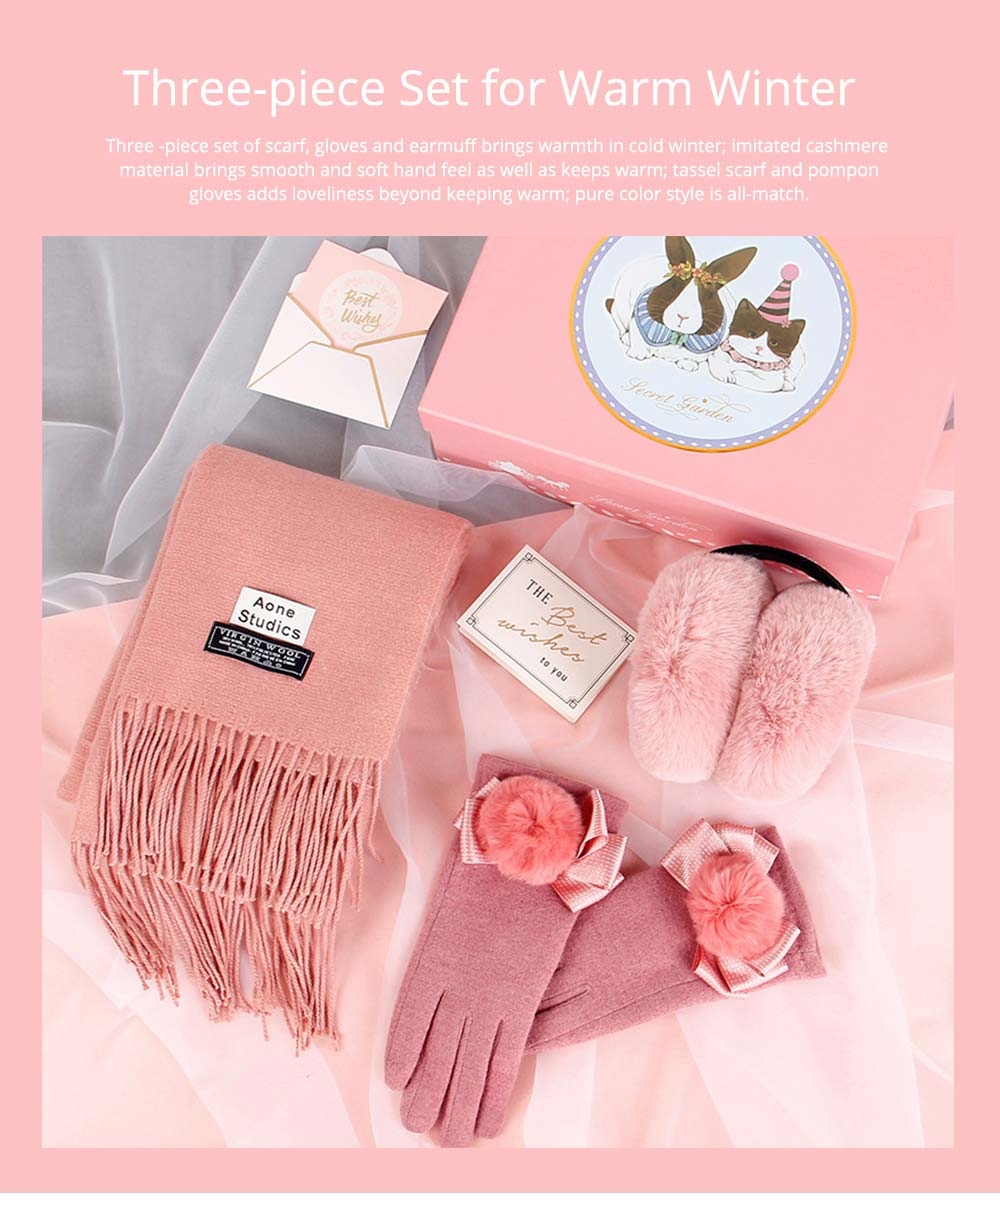 Birthday Present For Mother, Creative Gift Set of Scarf Gloves Earmuff, Elegant Gift Three-piece Set for Warm Winter 7